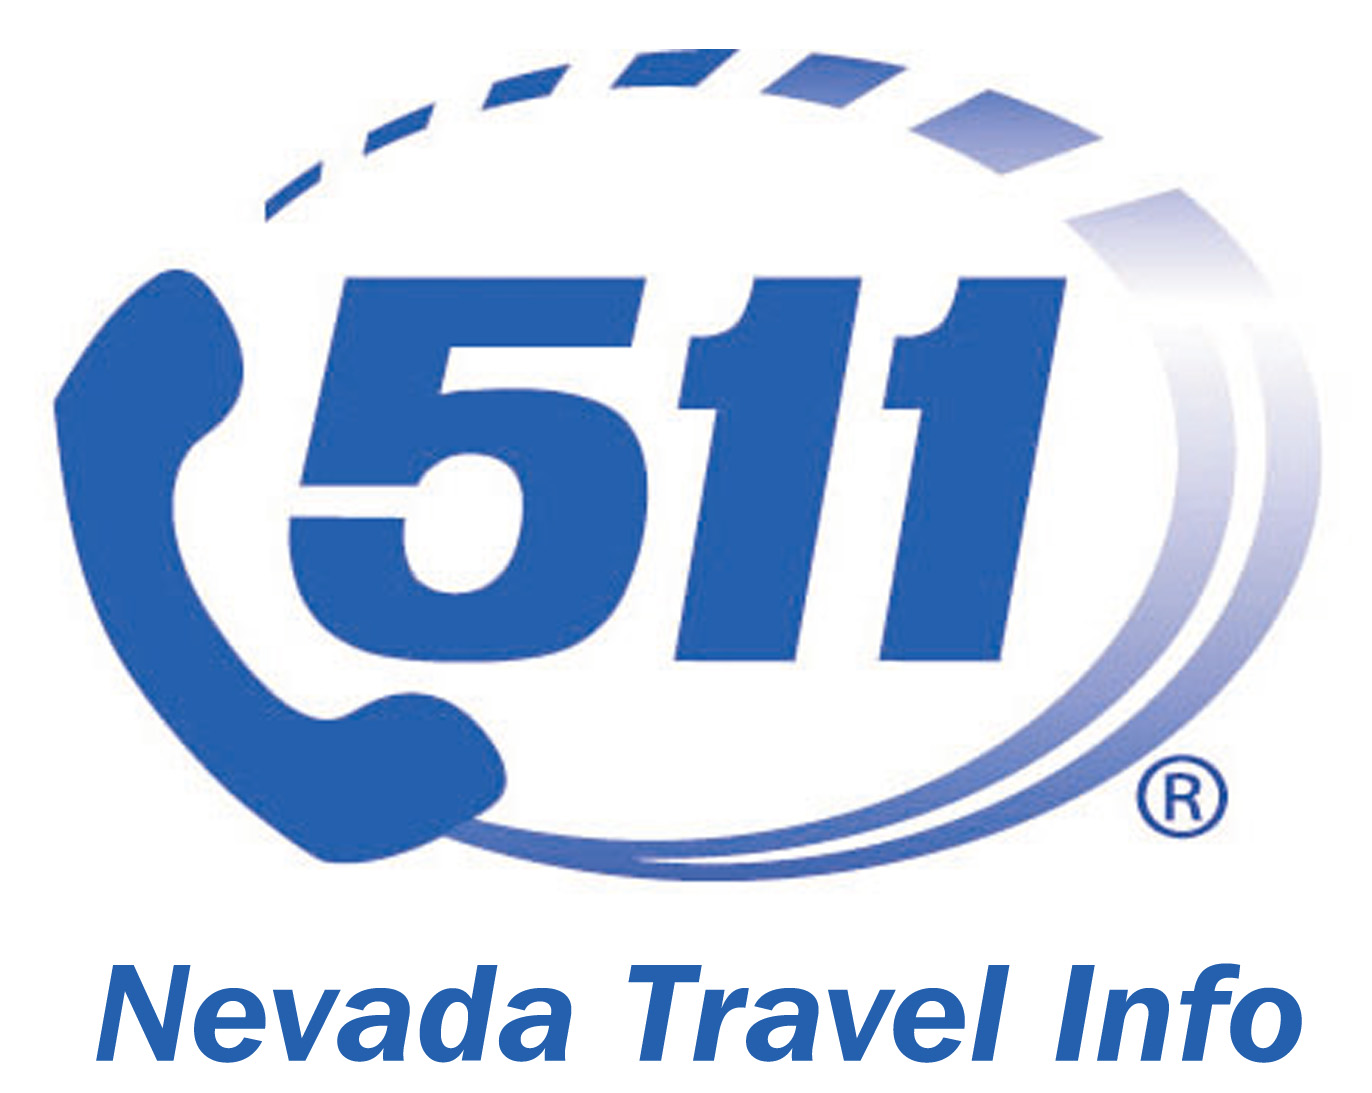 Travel Info | Nevada Department of Transportation